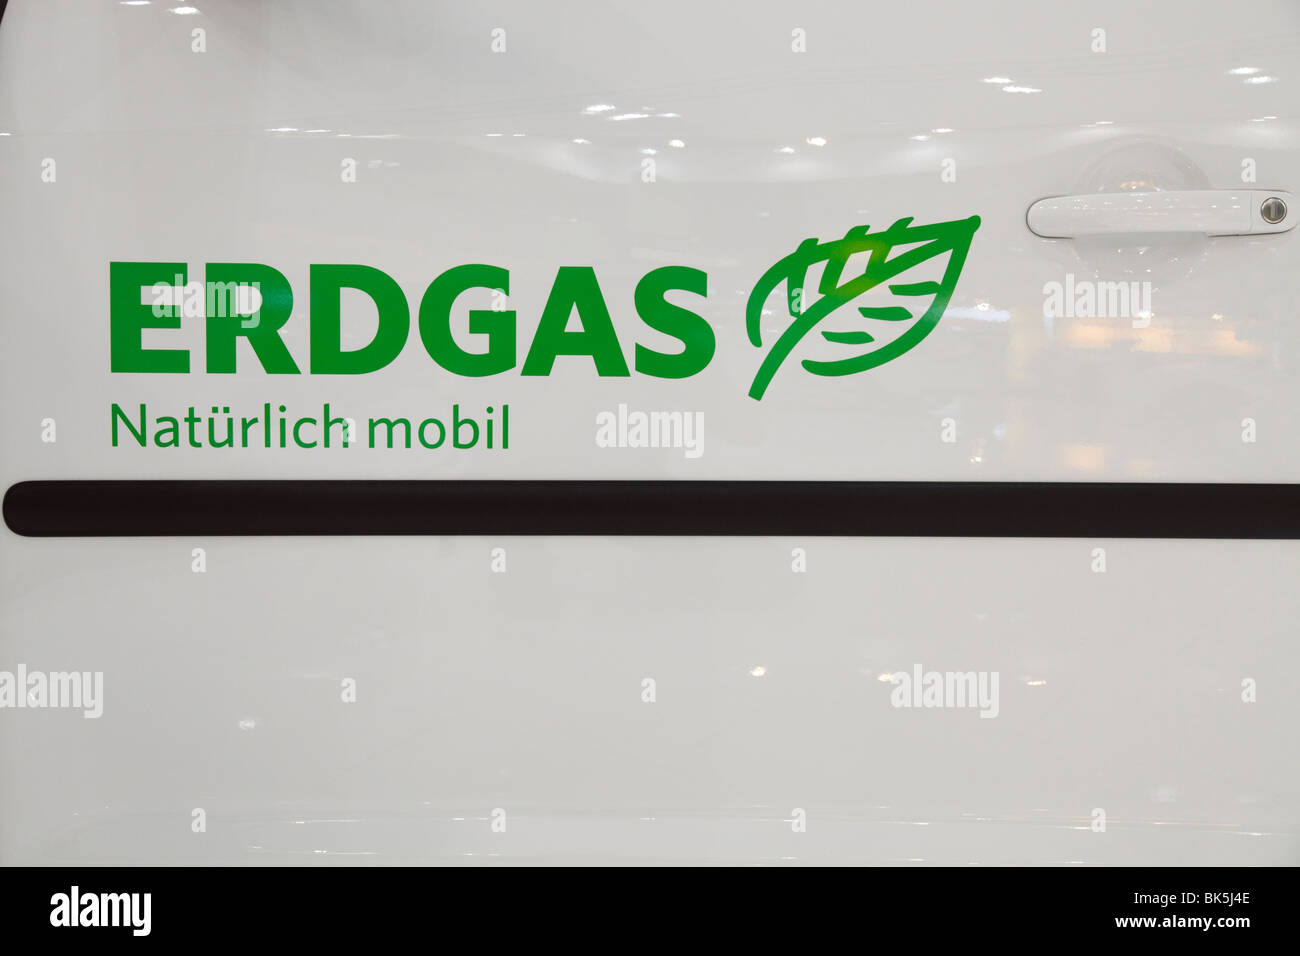 advertising for natural-gas propulsion at the Motor Show 2010 in Leipzig, Germany - Stock Image